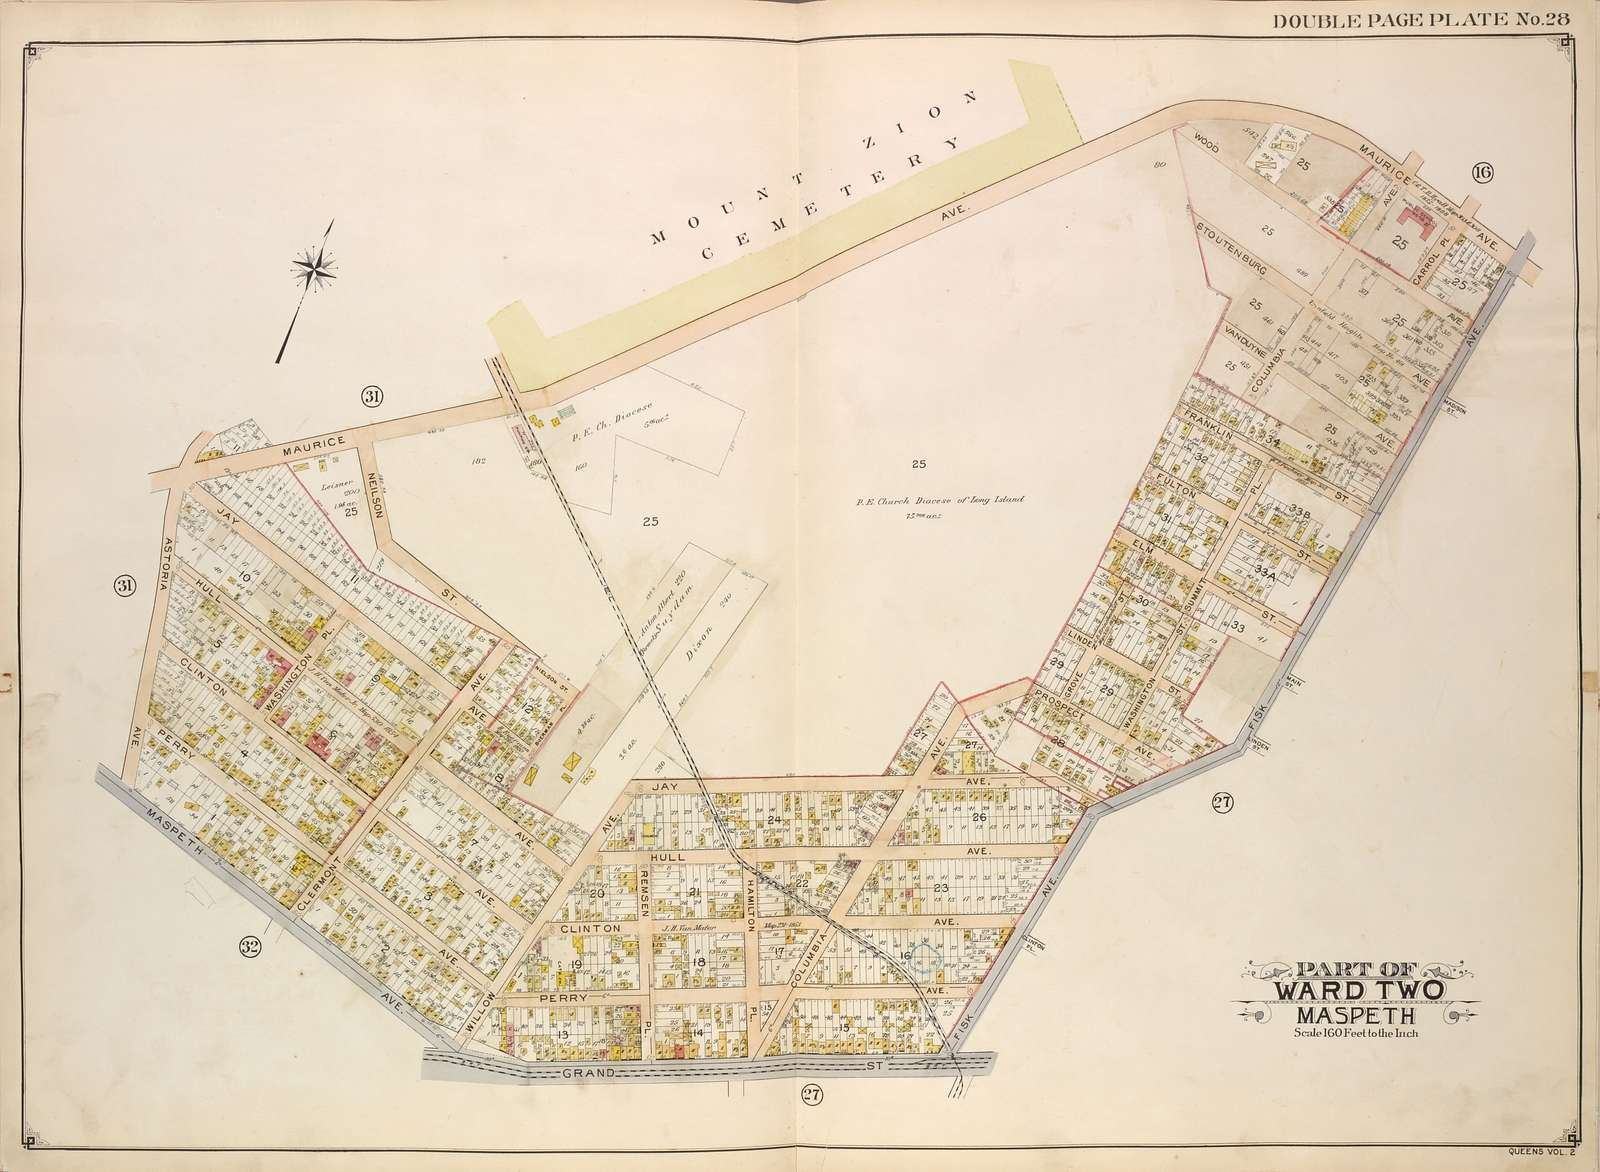 Queens, Vol. 2, Double Page Plate No. 28; Part of Ward Two Maspeth; [Map bounded by Maurice Ave., Fisk Ave., Grand St.; Including Maspeth Ave., Astoria Ave.]